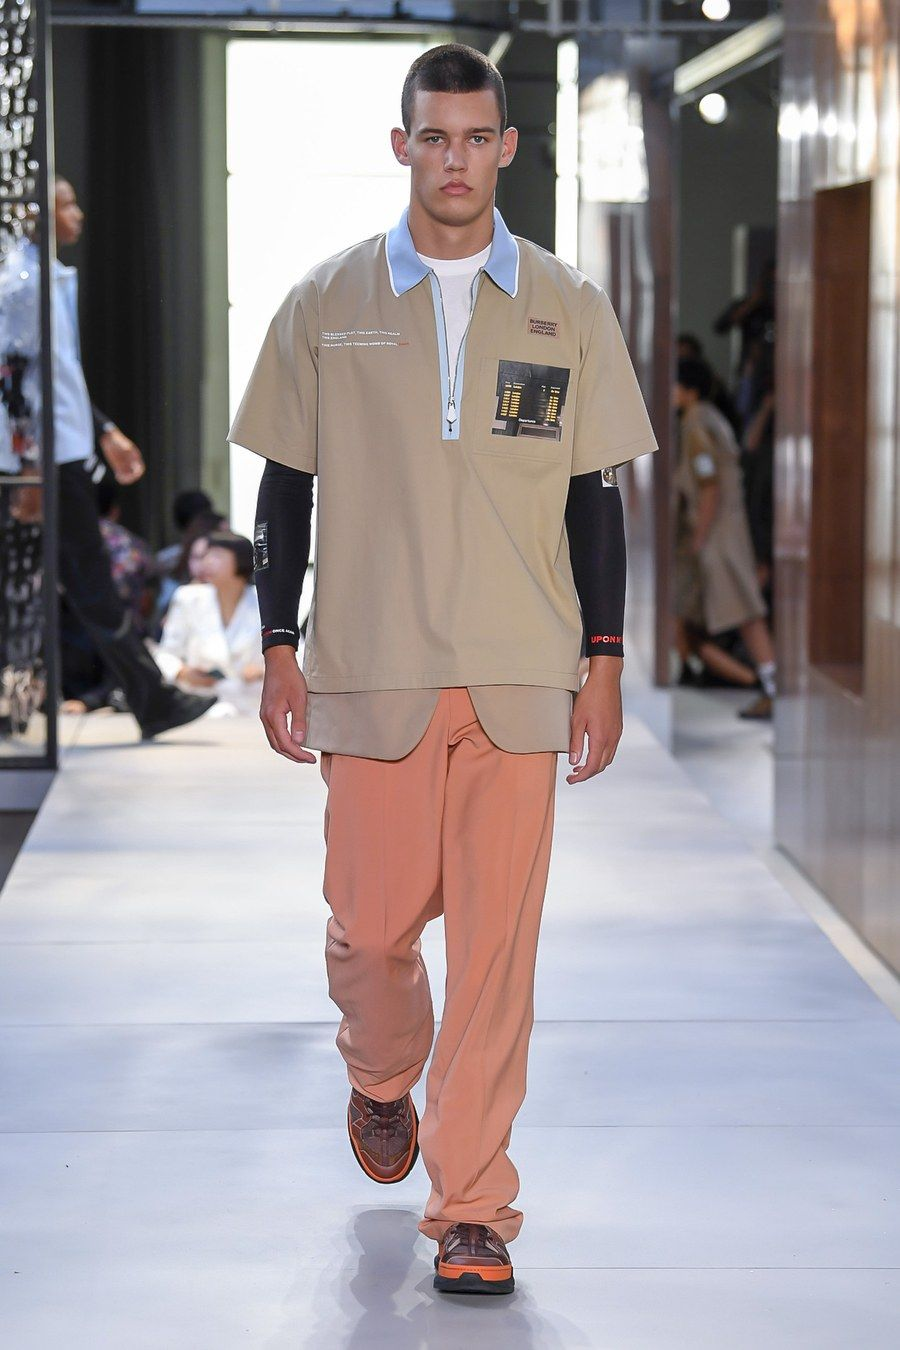 1b3c0eb8a2ce Riccardo Tisci unveiled his first menswear collection for Burberry